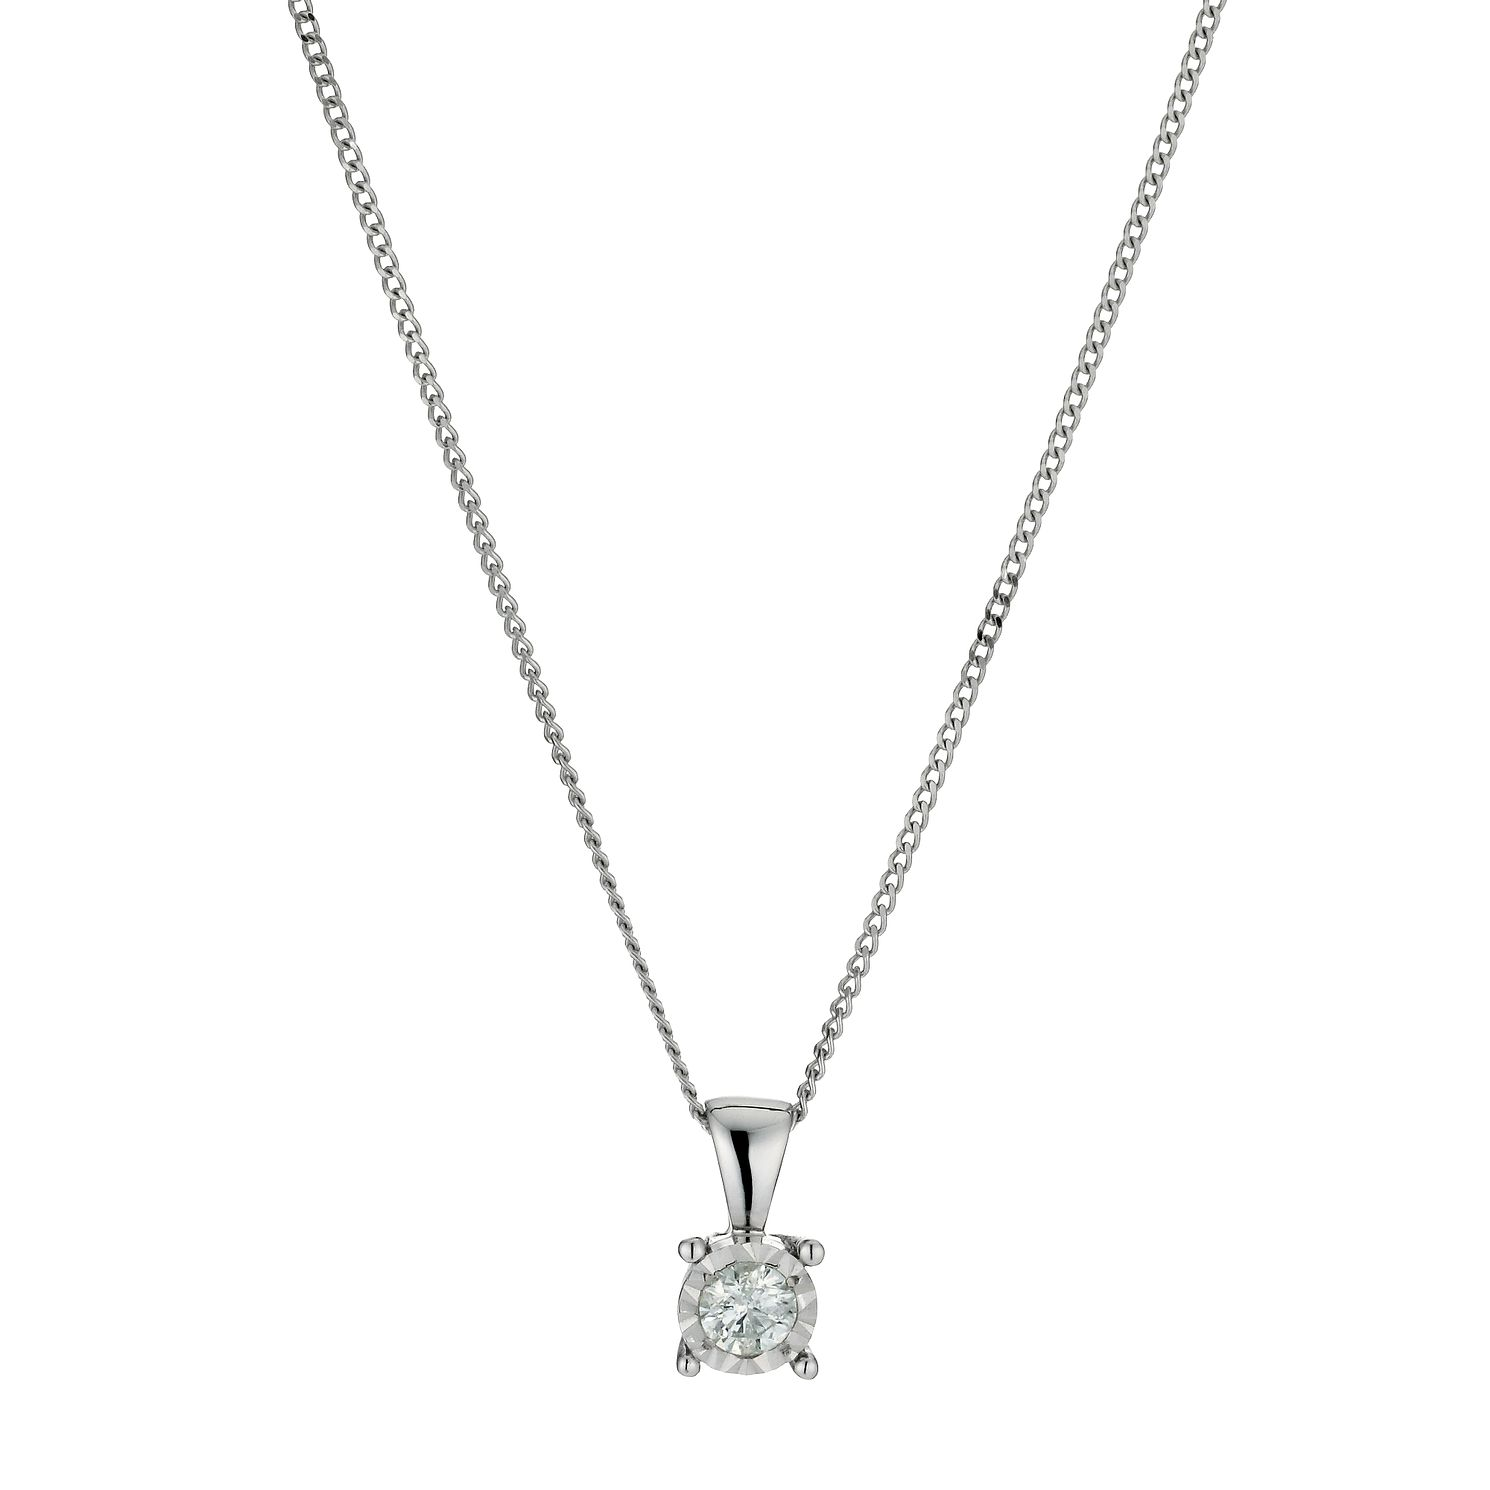 9ct White Gold 1/5 Carat Solitaire Pendant Necklace - Product number 9917187